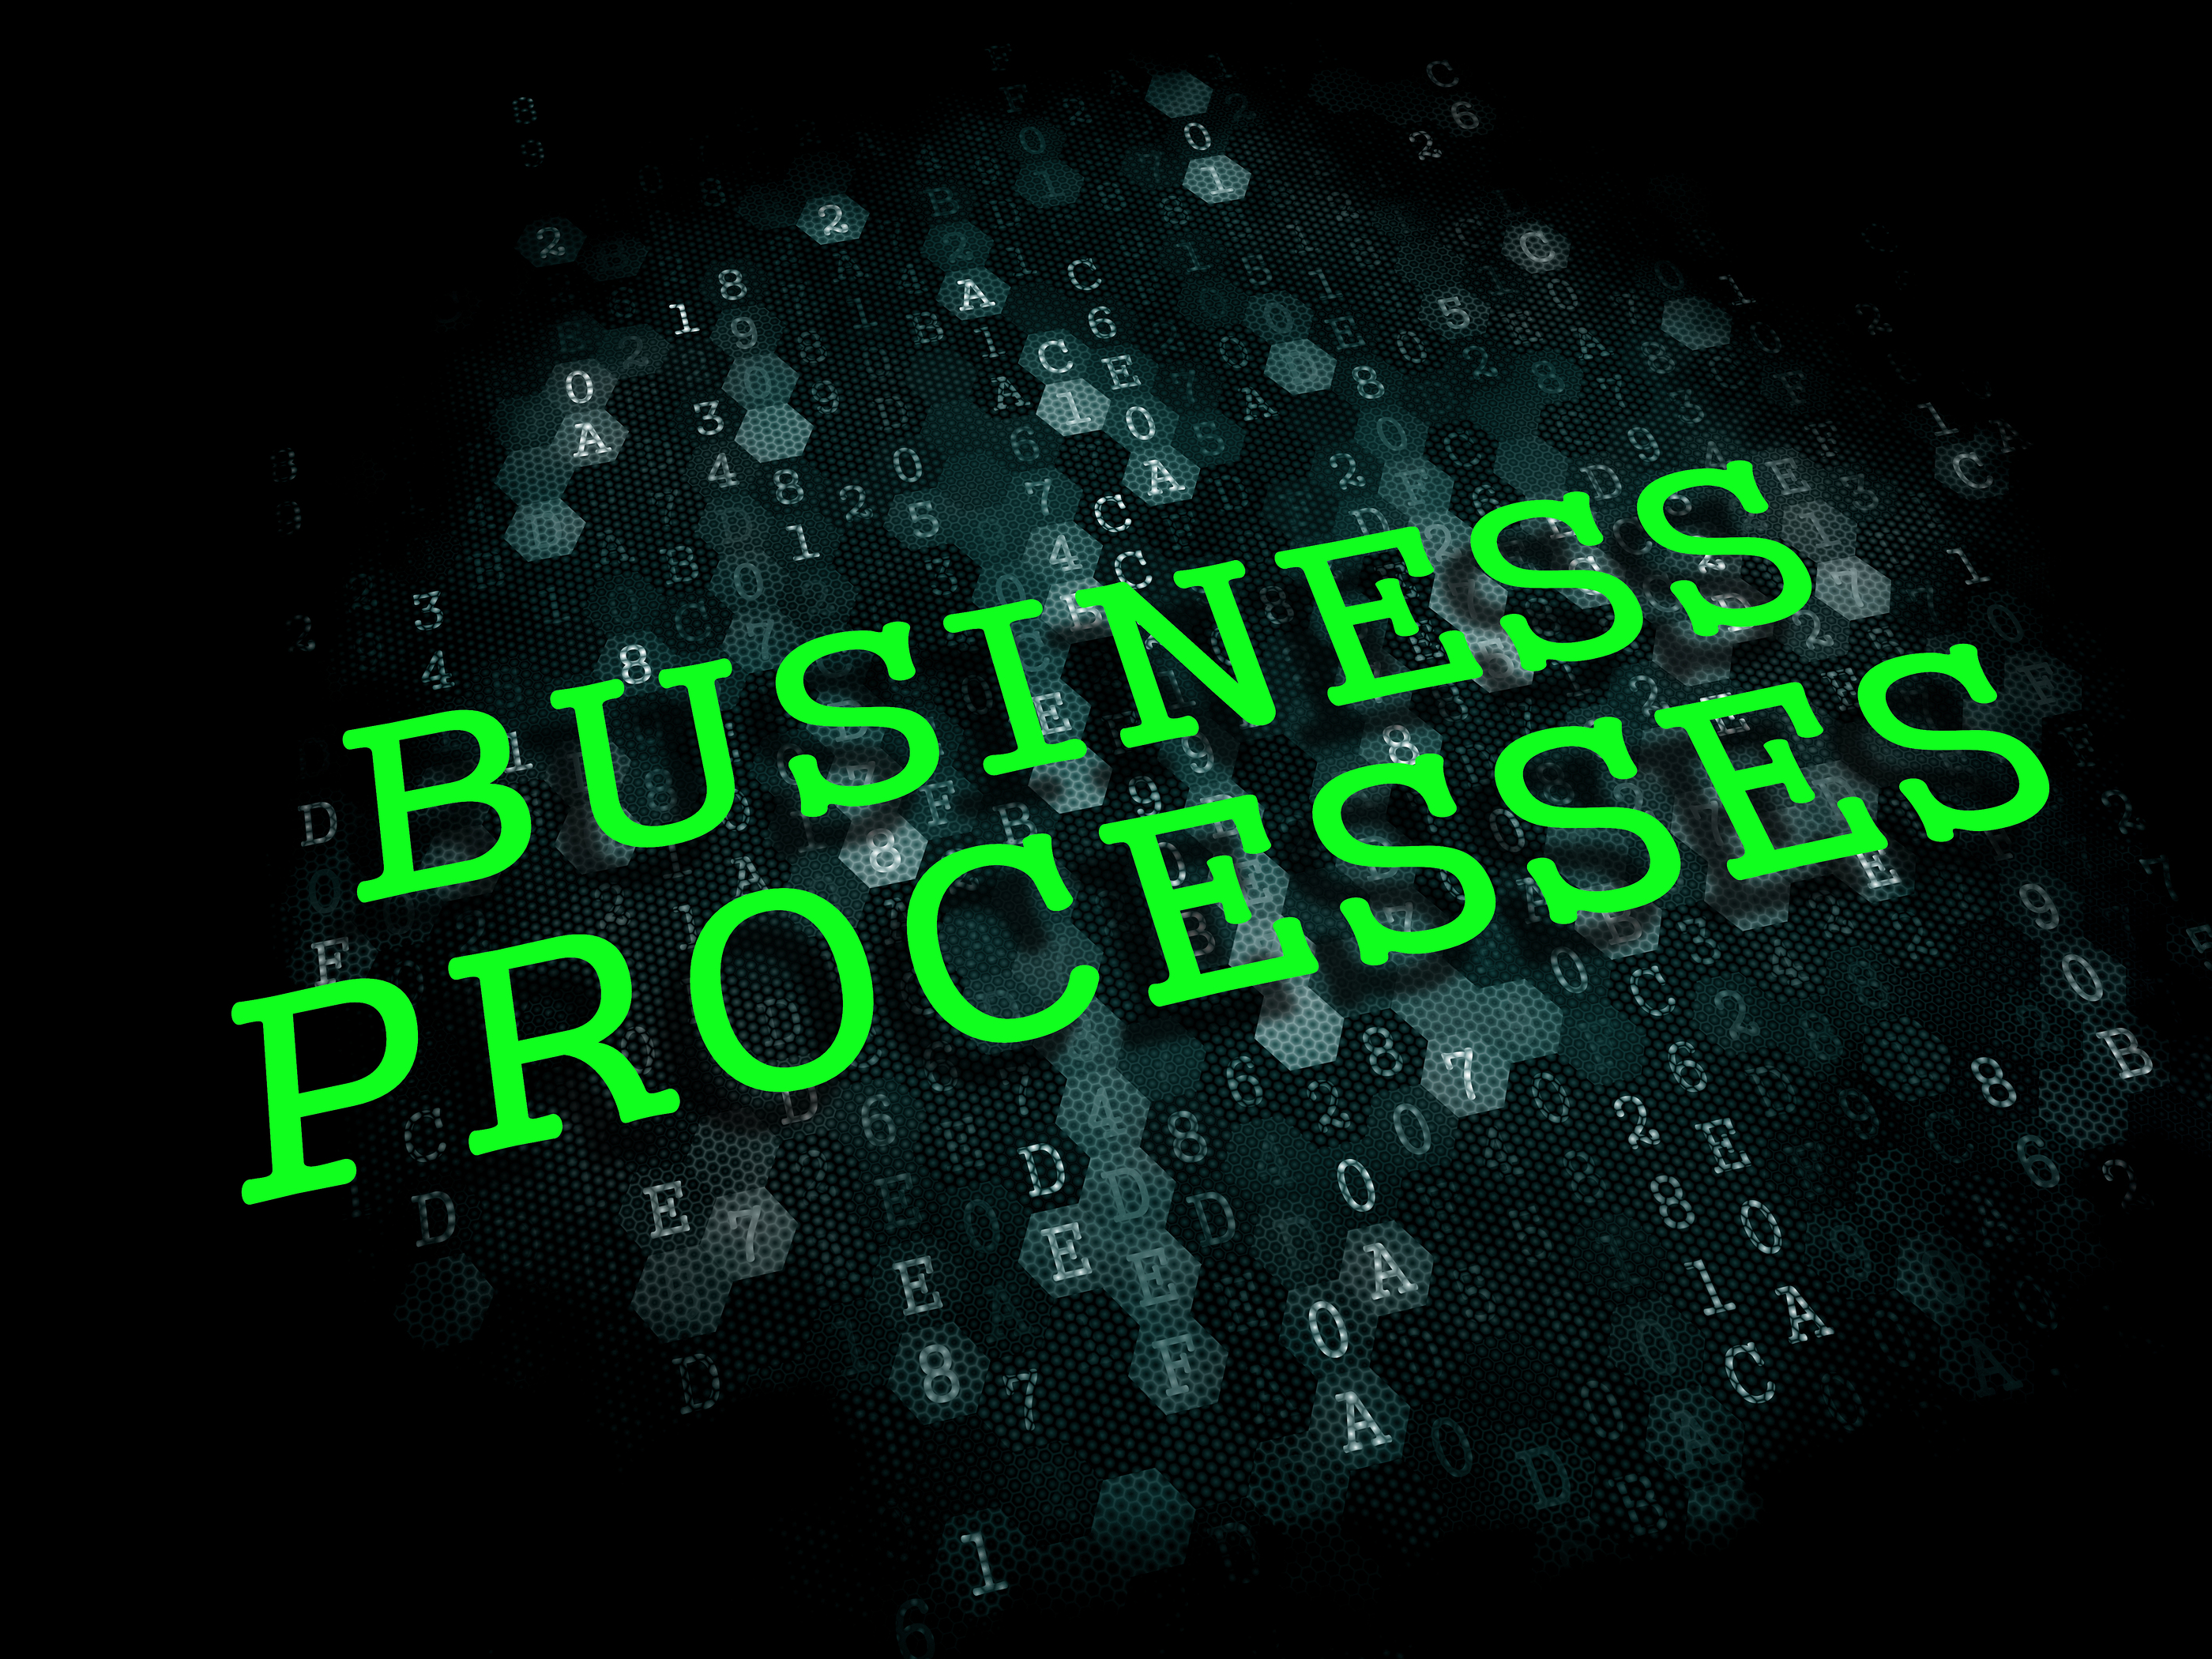 Business Processes.